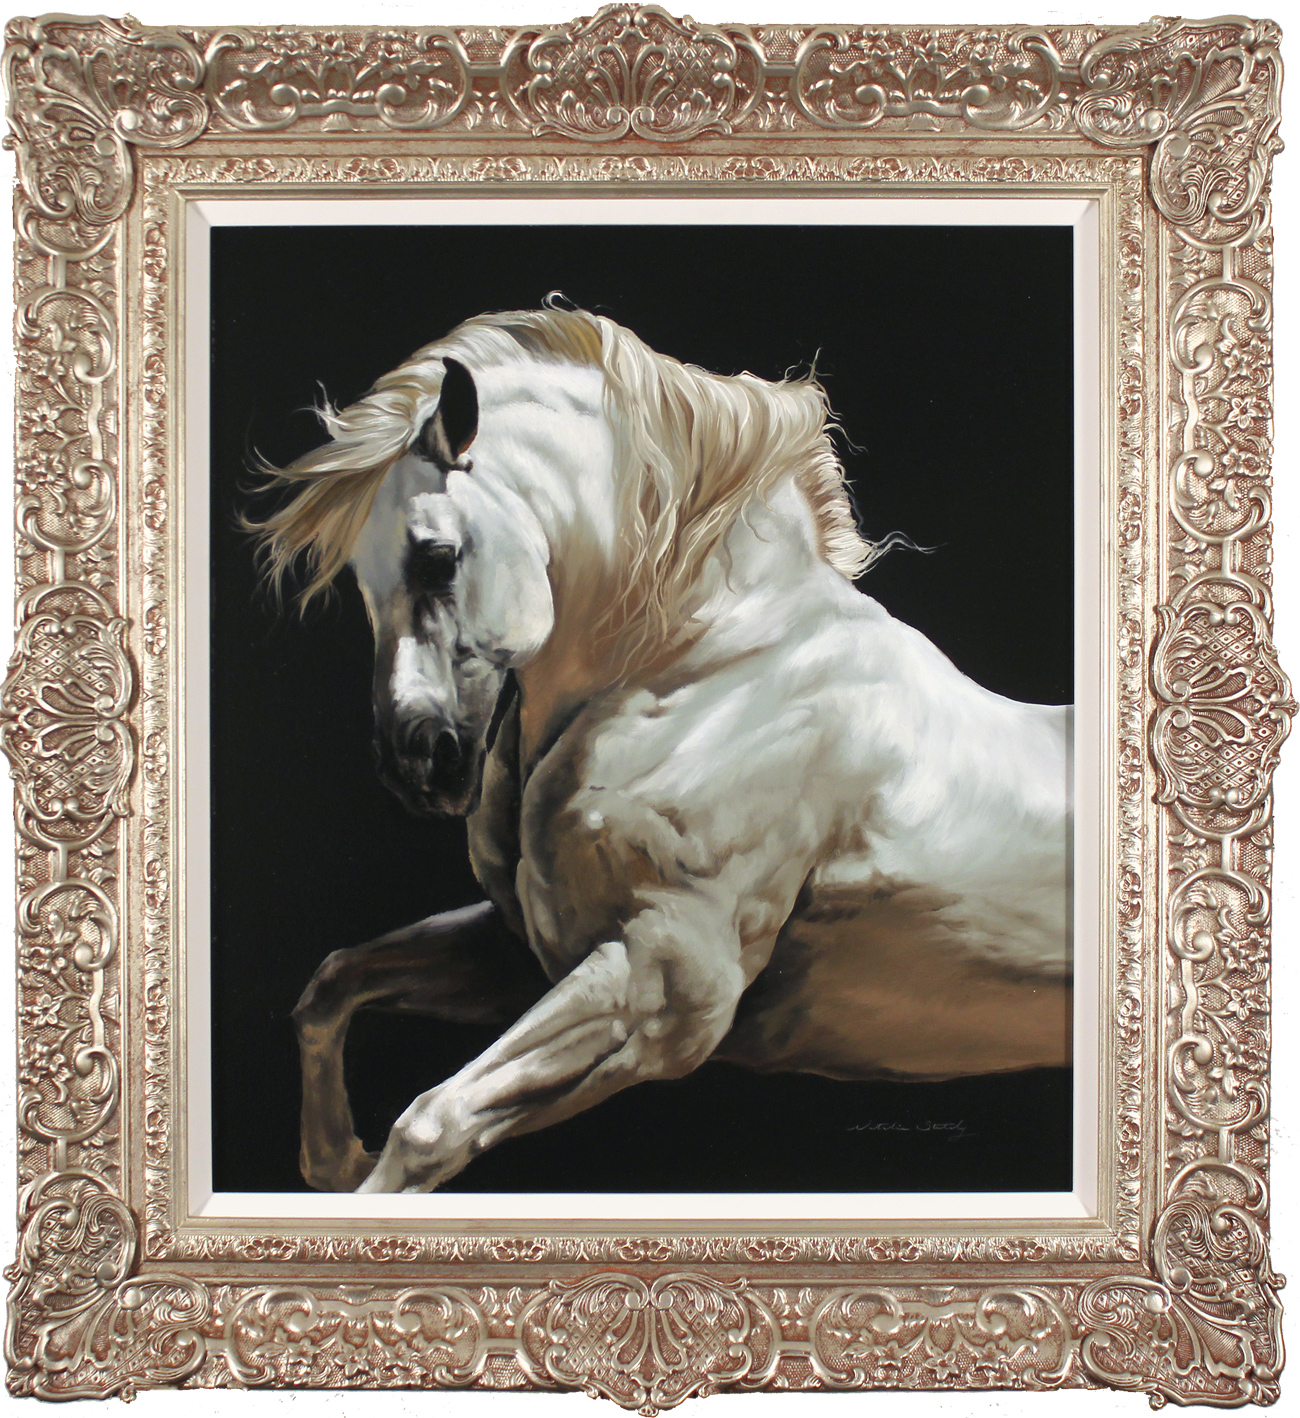 Natalie Stutely, Original oil painting on panel, Andalusian Stallion, click to enlarge